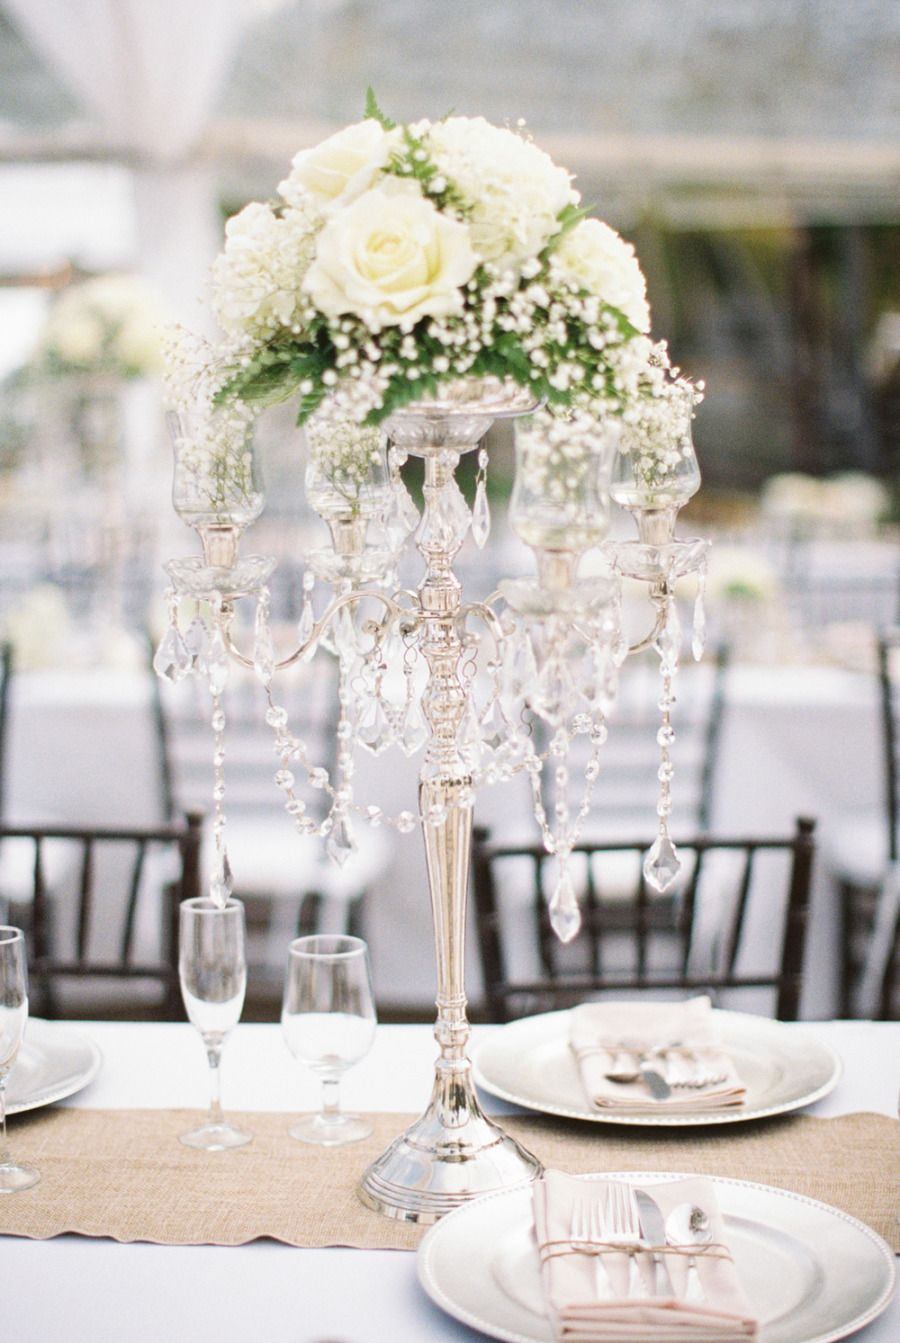 Wedding centerpieces extravagant or simple wedding for White wedding table decorations